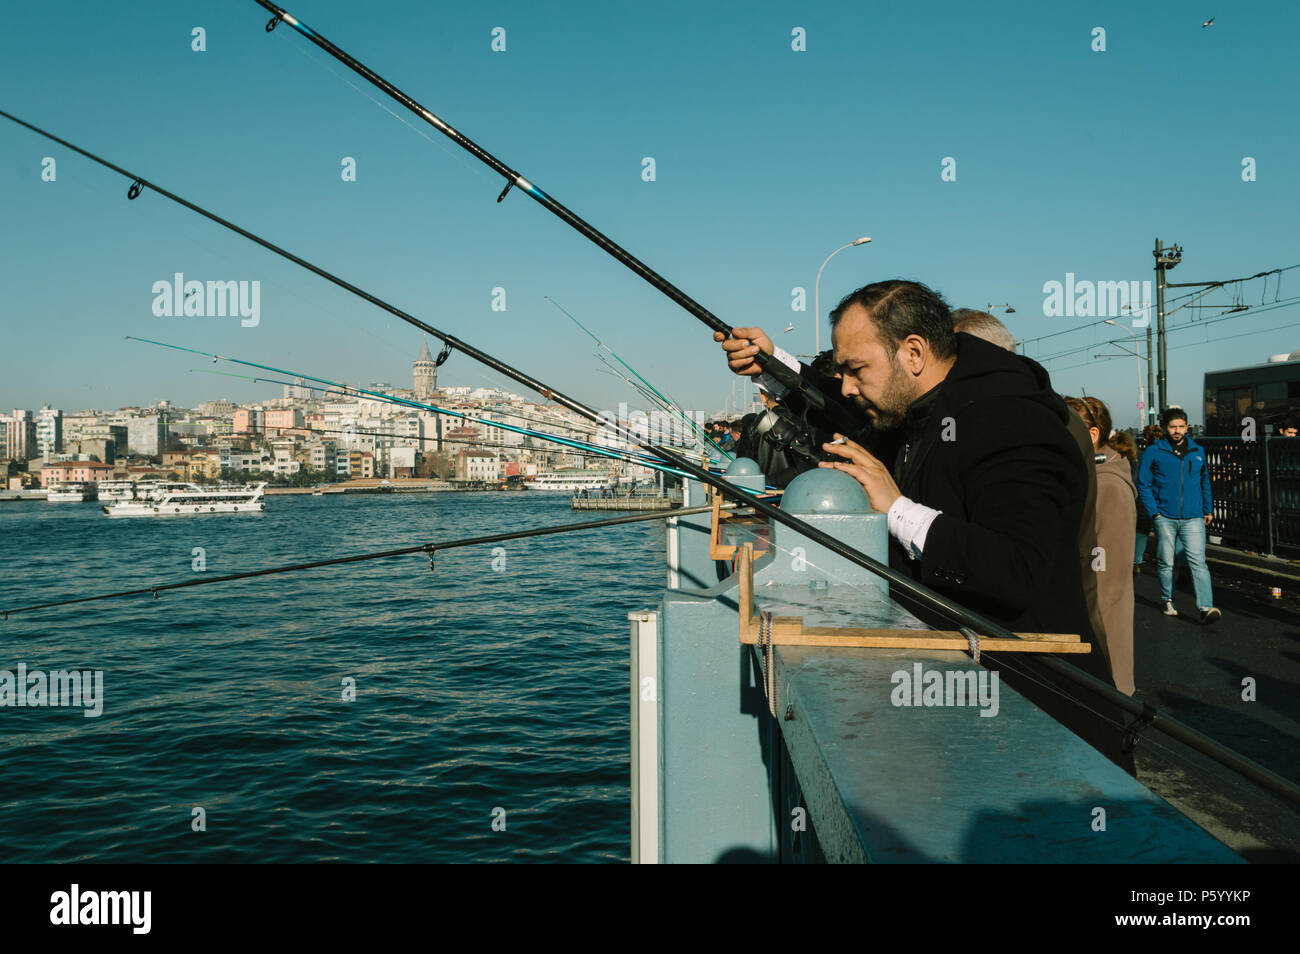 Istanbul, Turkey - January 06, 2018: Local fishermen fishing on Galata Bridge to relax and enjoy their hobby in Istanbul, Turkey. Stock Photo